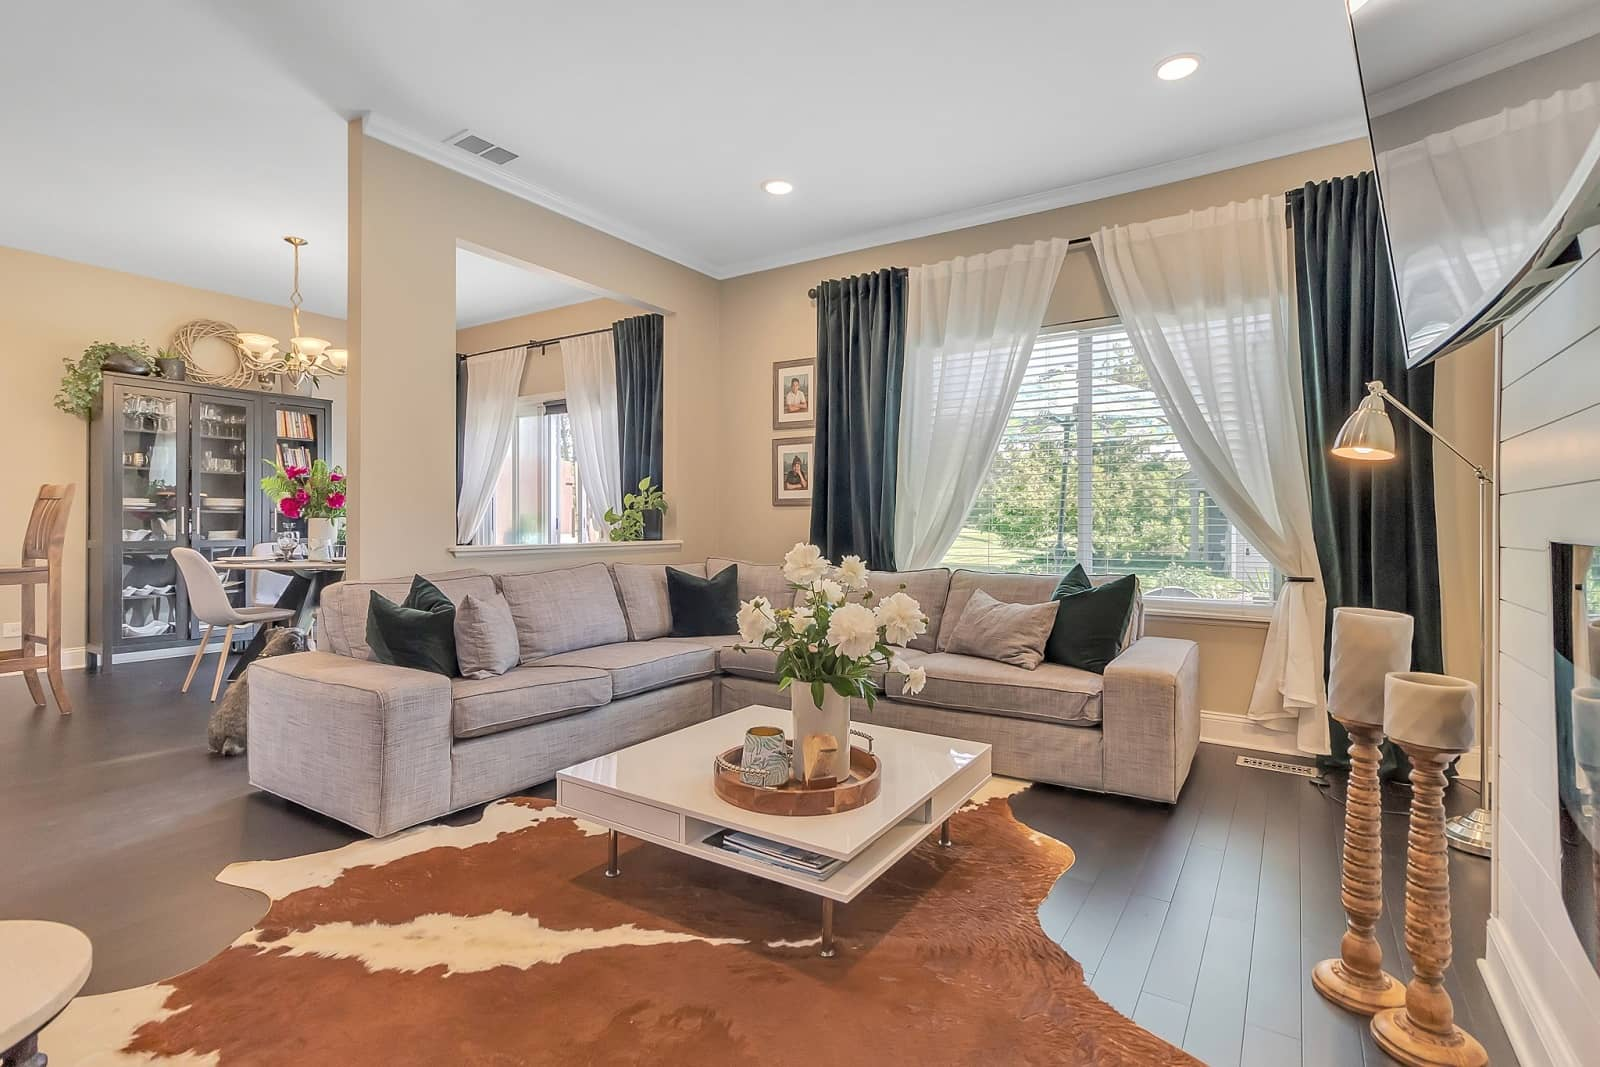 Real Estate Photography in Elgin - IL - USA - Living Area View